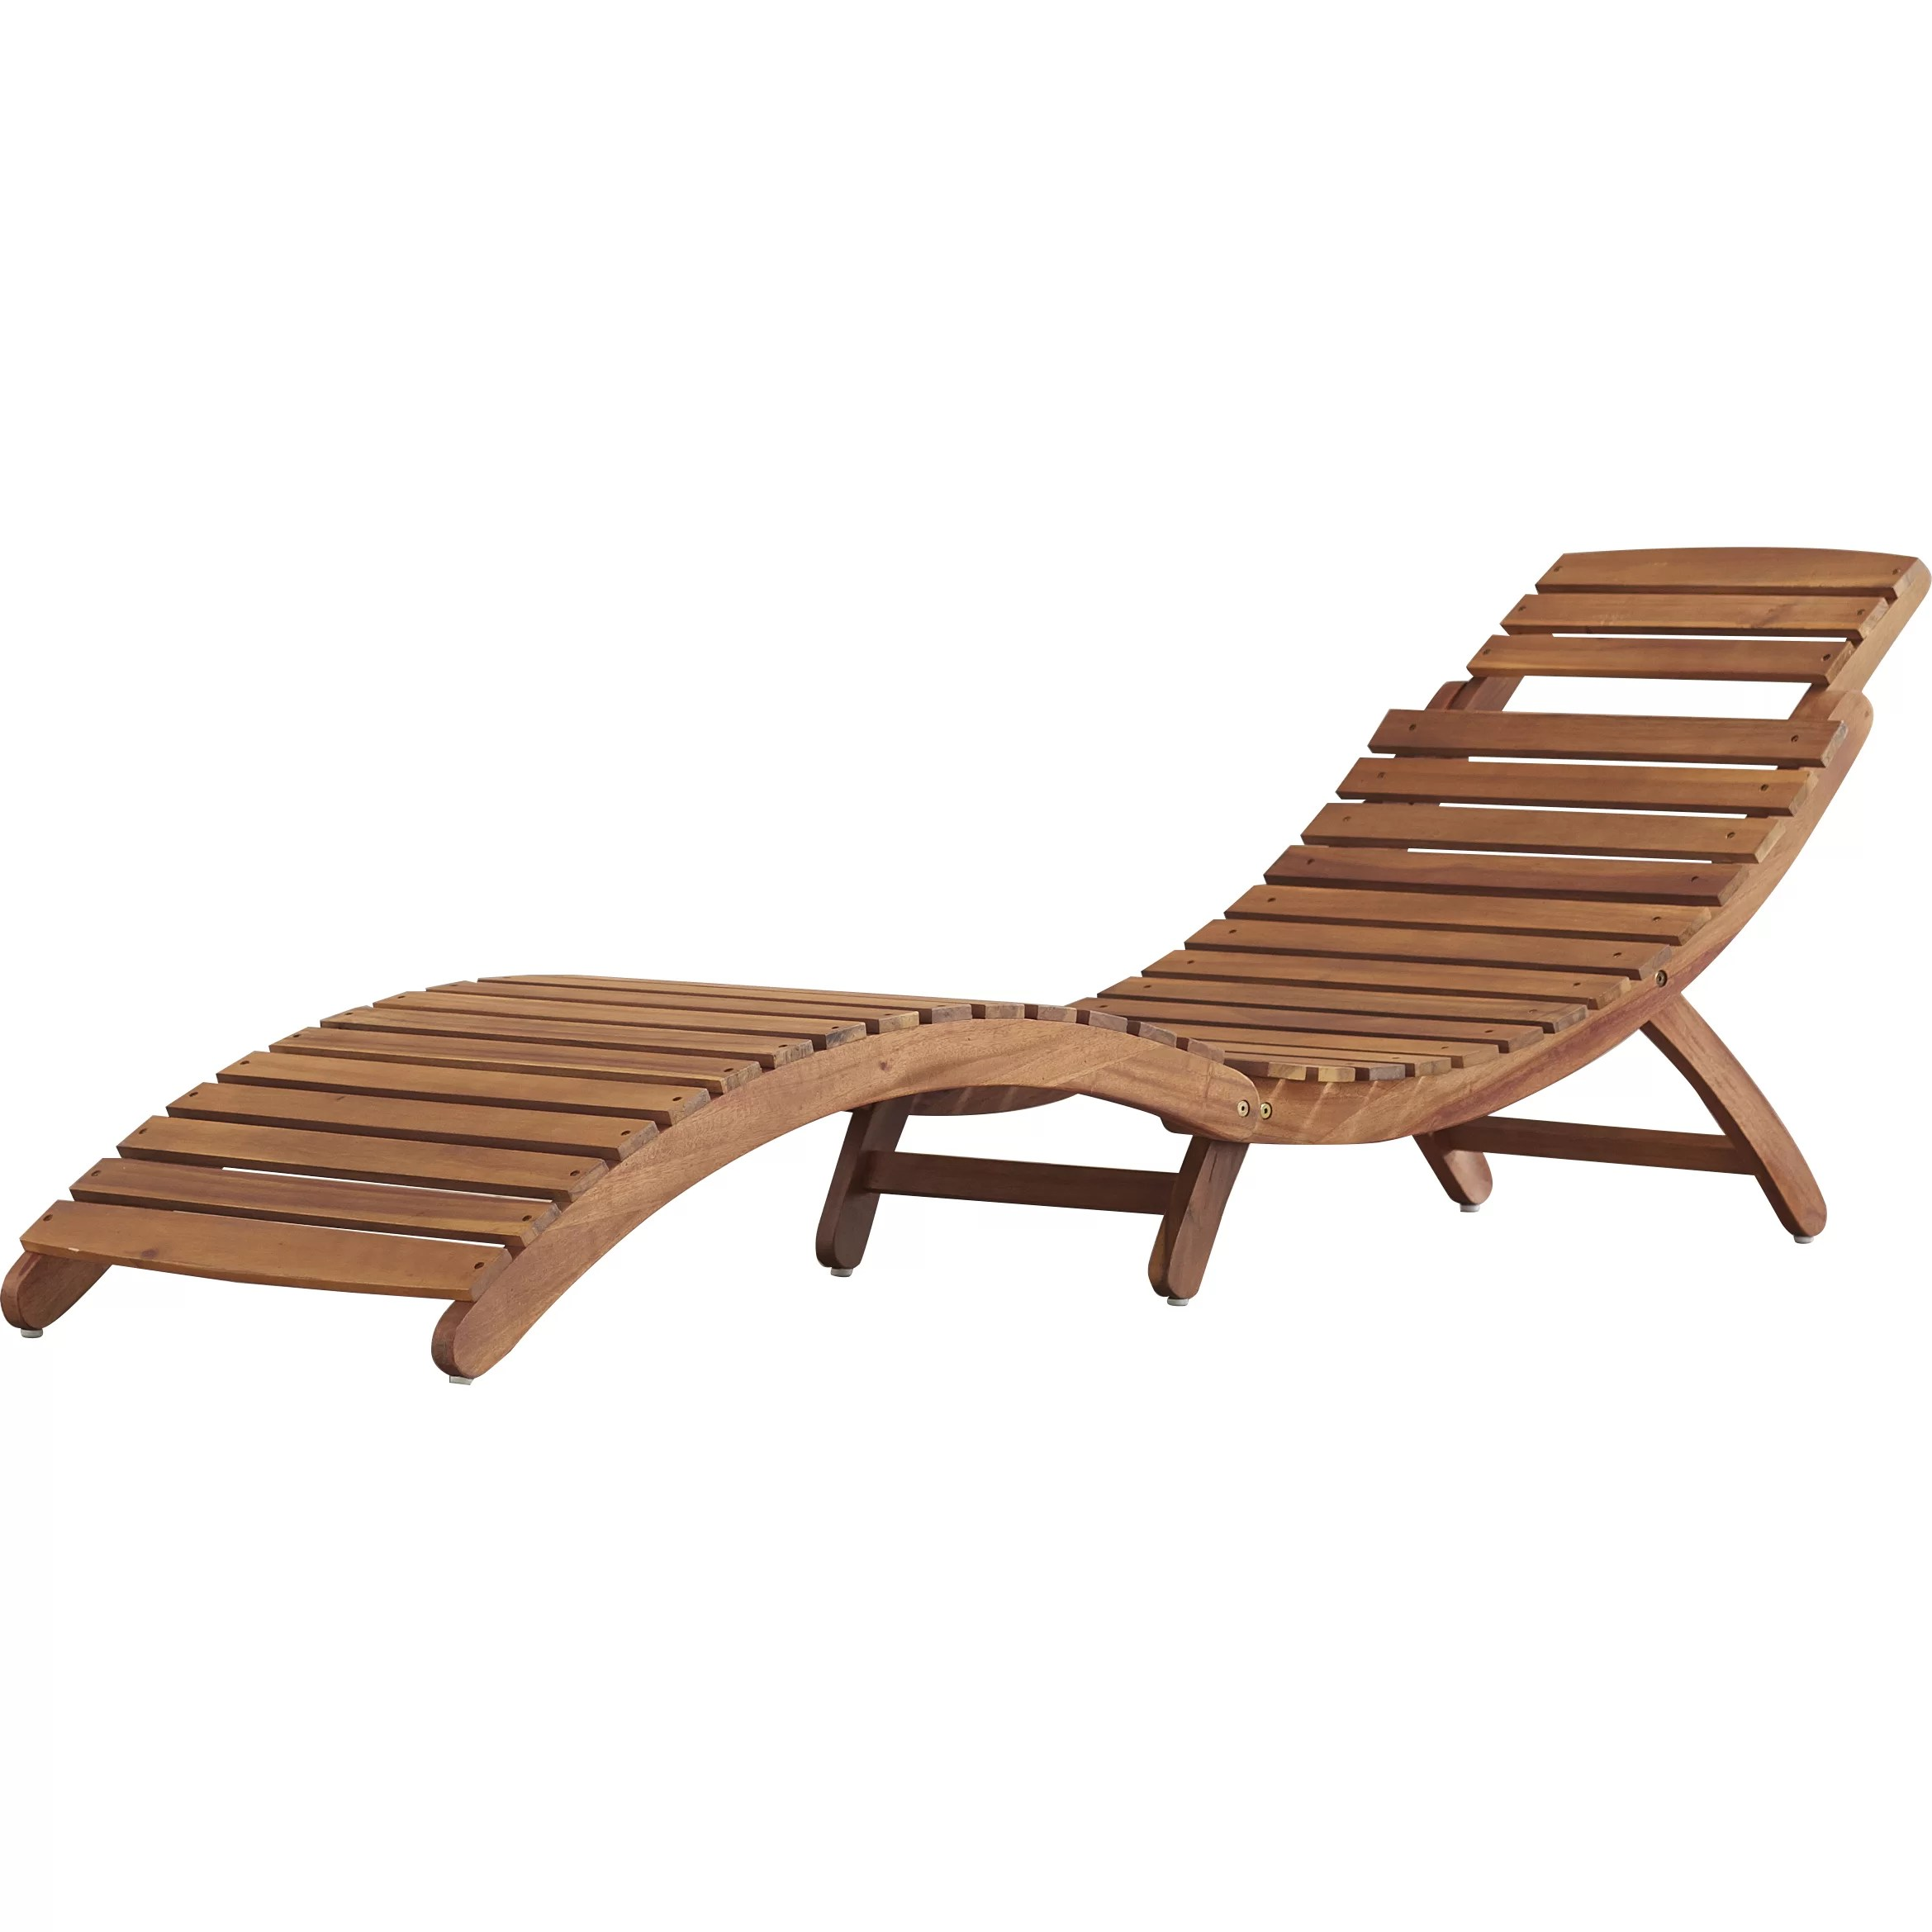 Outdoor Chaise Lounge Bay Isle Home Philodendron Wood Outdoor Chaise Lounge